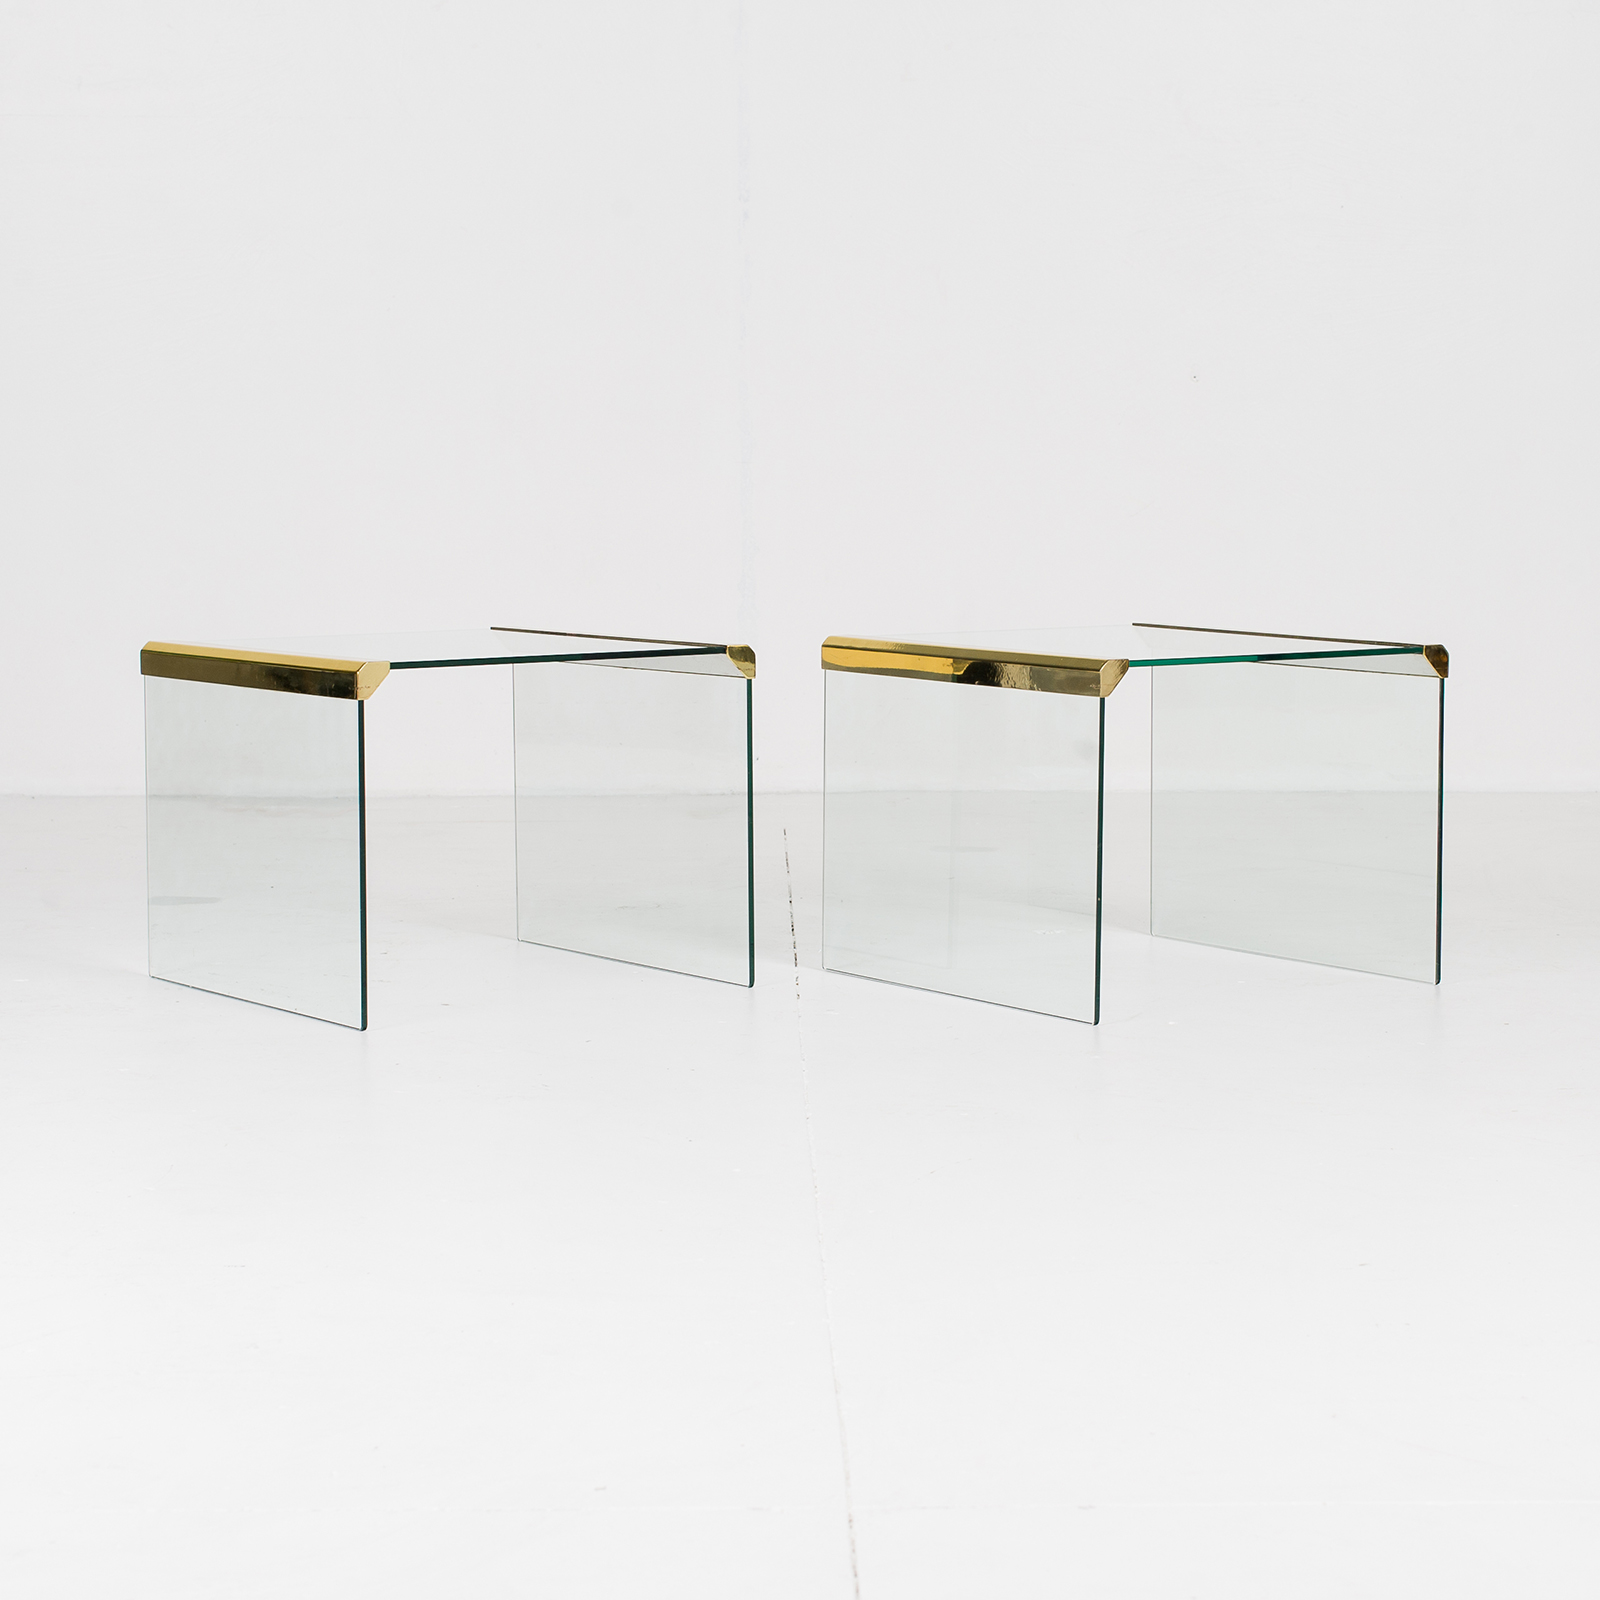 Waterfall Side Table By Pace In Glass And Anodised Brass, 1970s, United States12